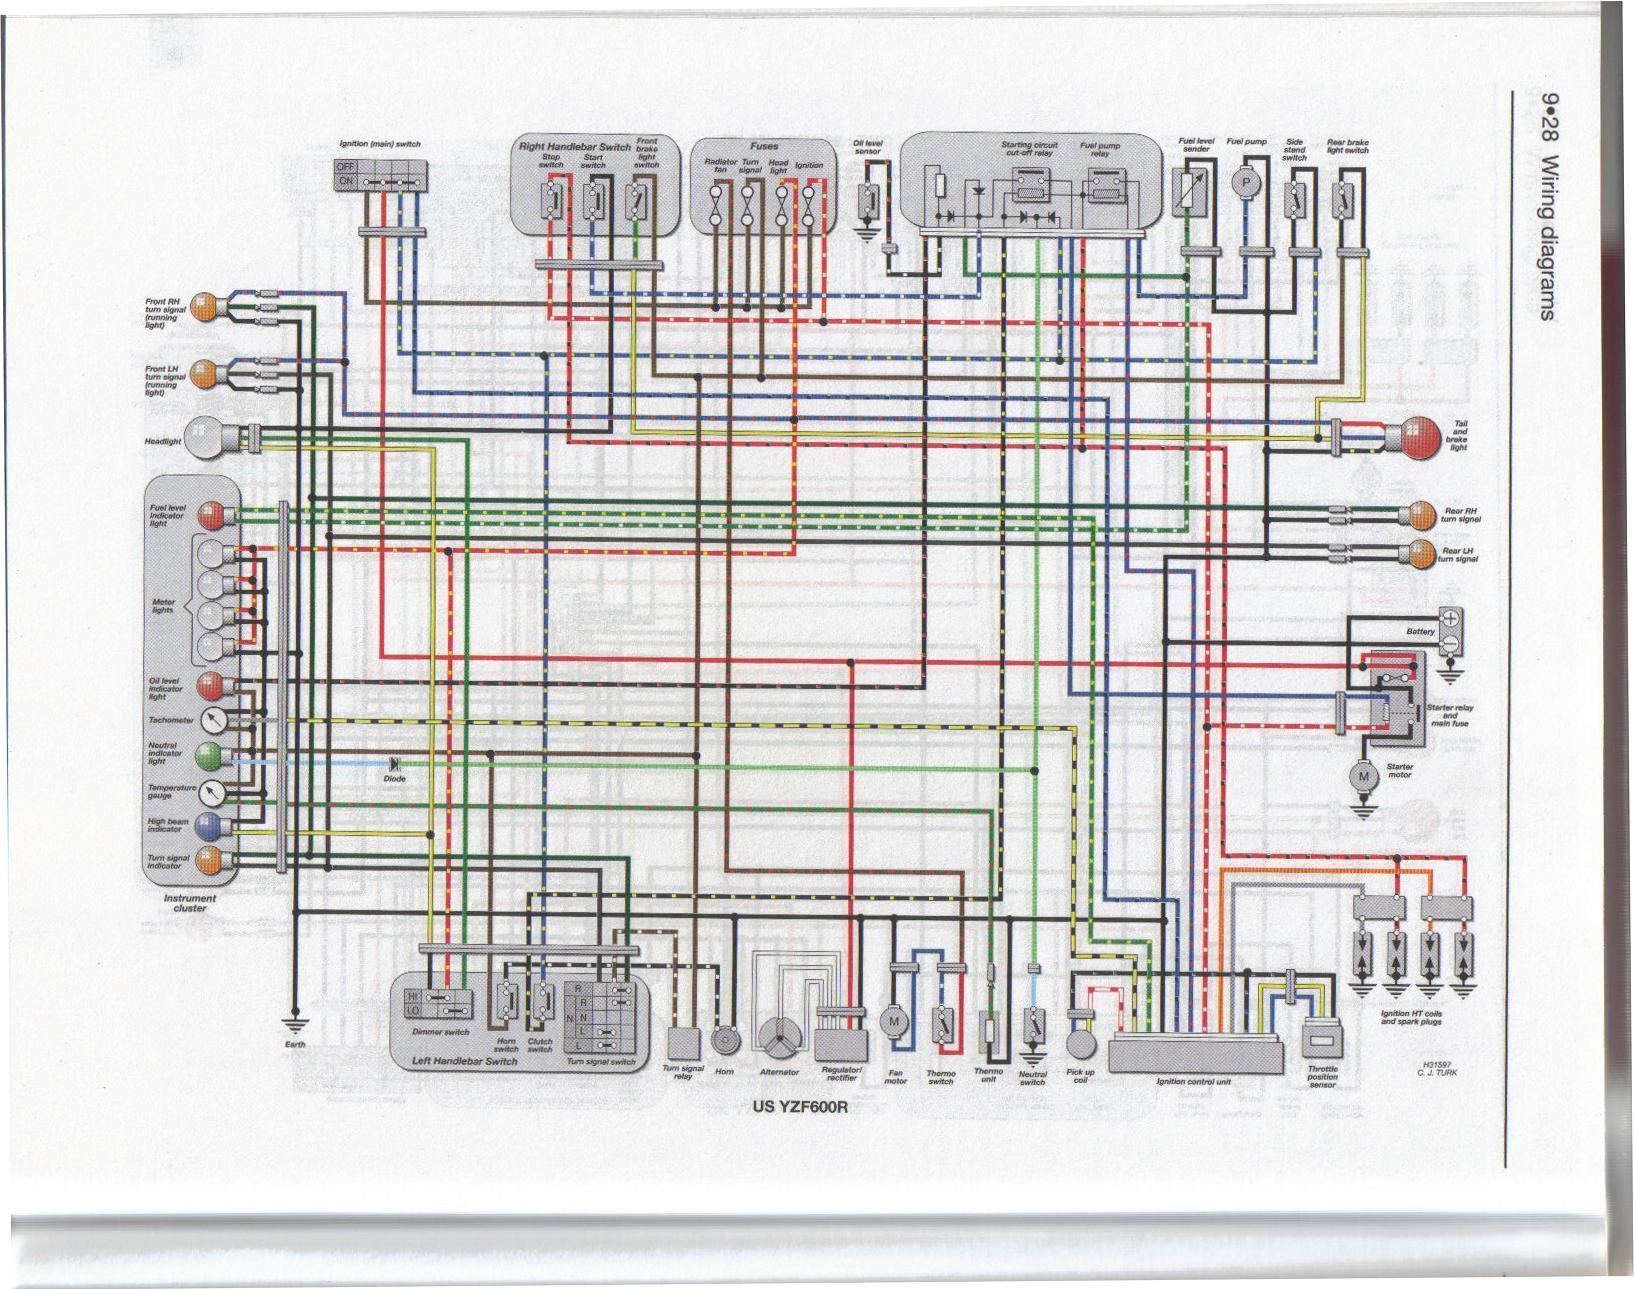 2006 yamaha r1 wiring diagram wiring diagram 2005 yamaha r1 wiring diagram image about